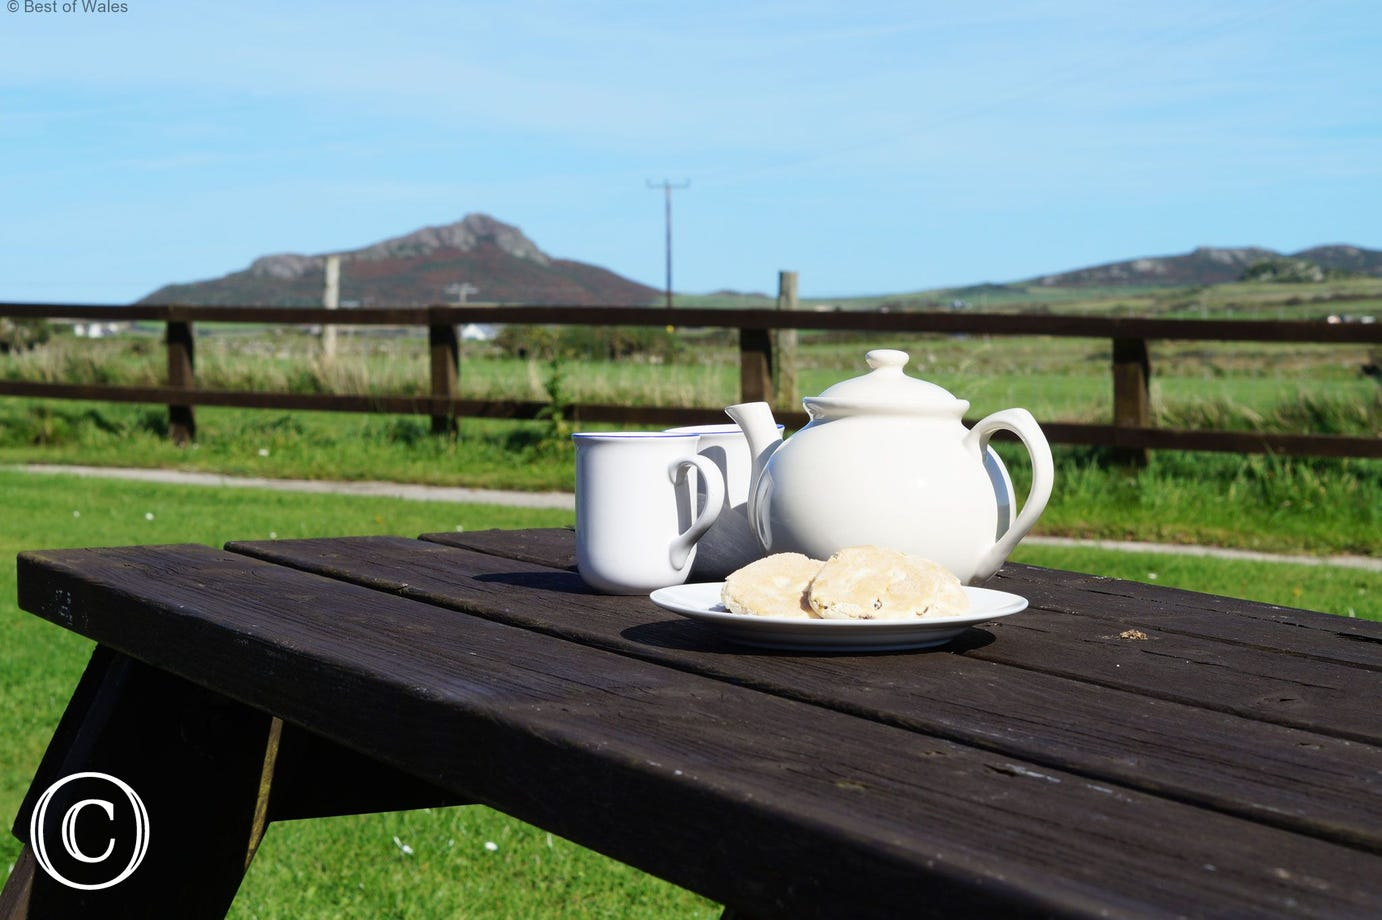 Enjoy a morning tea or coffee outside